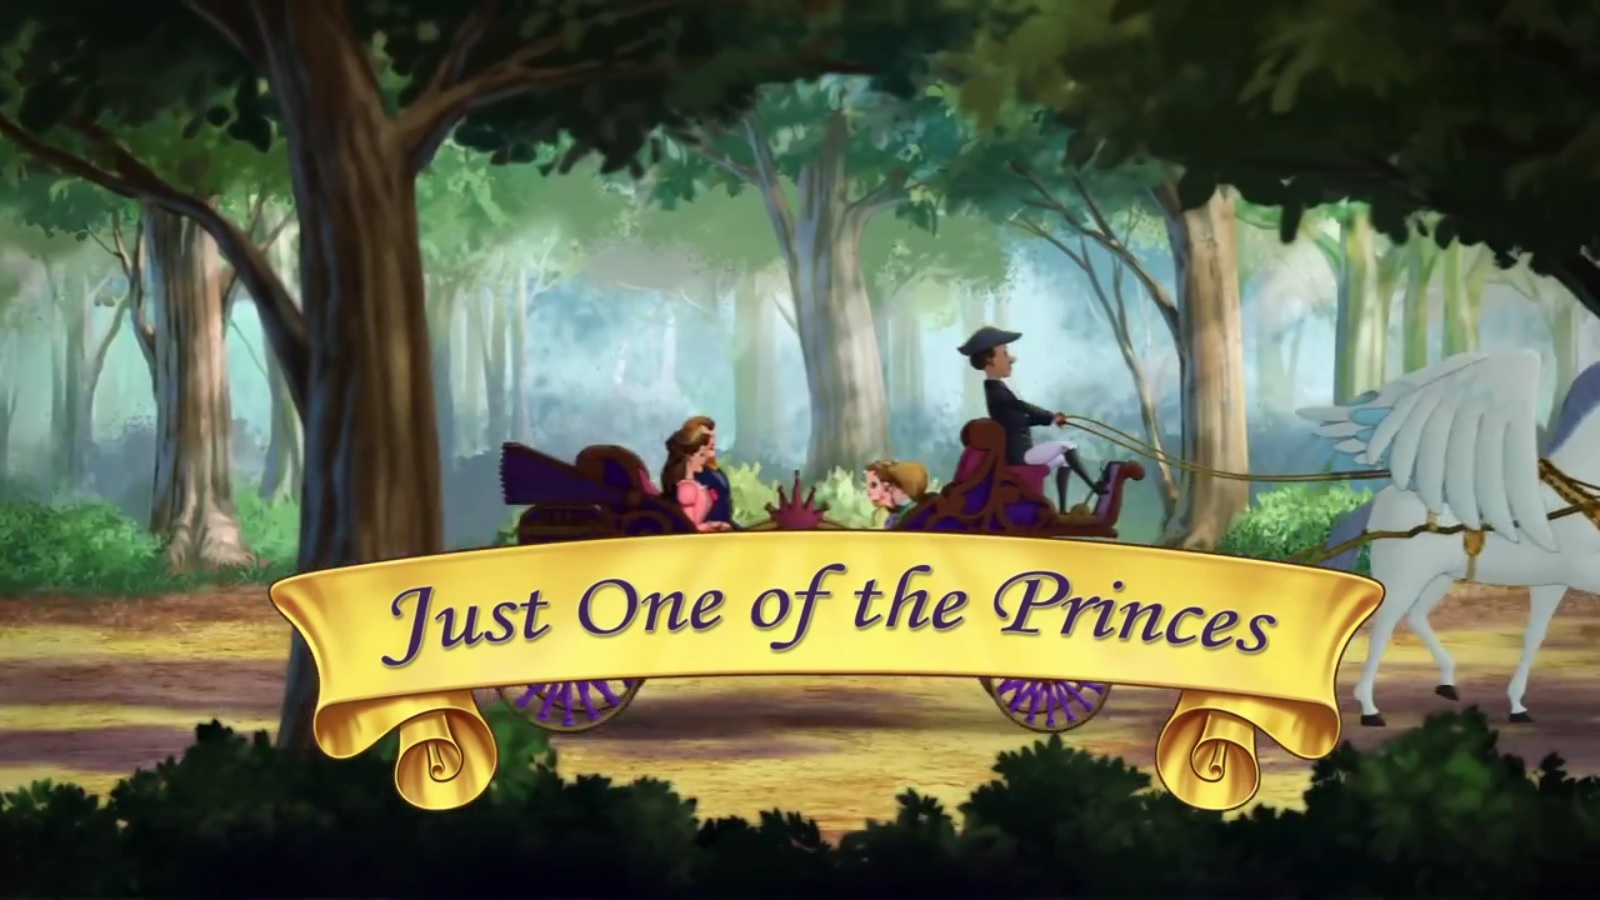 Just One of the Princes